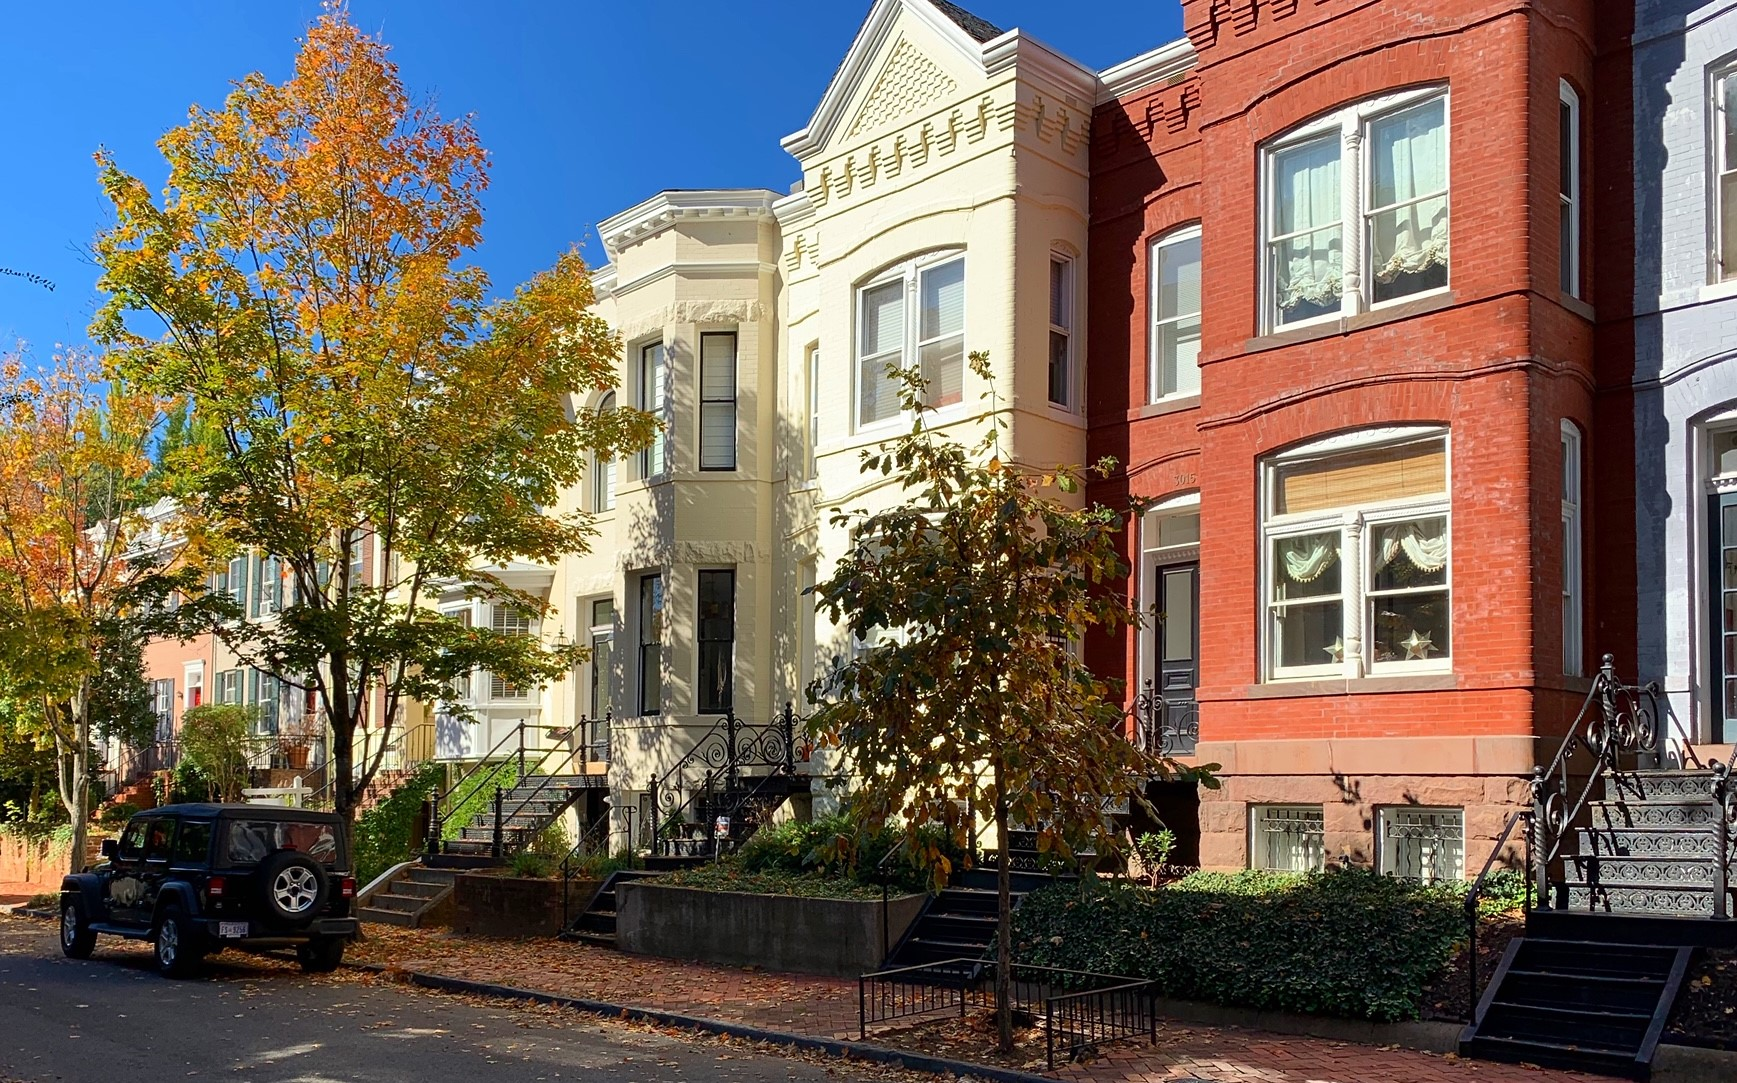 Washington, DC Historic Homes For Sale. Dent Pl in Georgetown. Artyom Shmatko Luxury Real Estate Agent